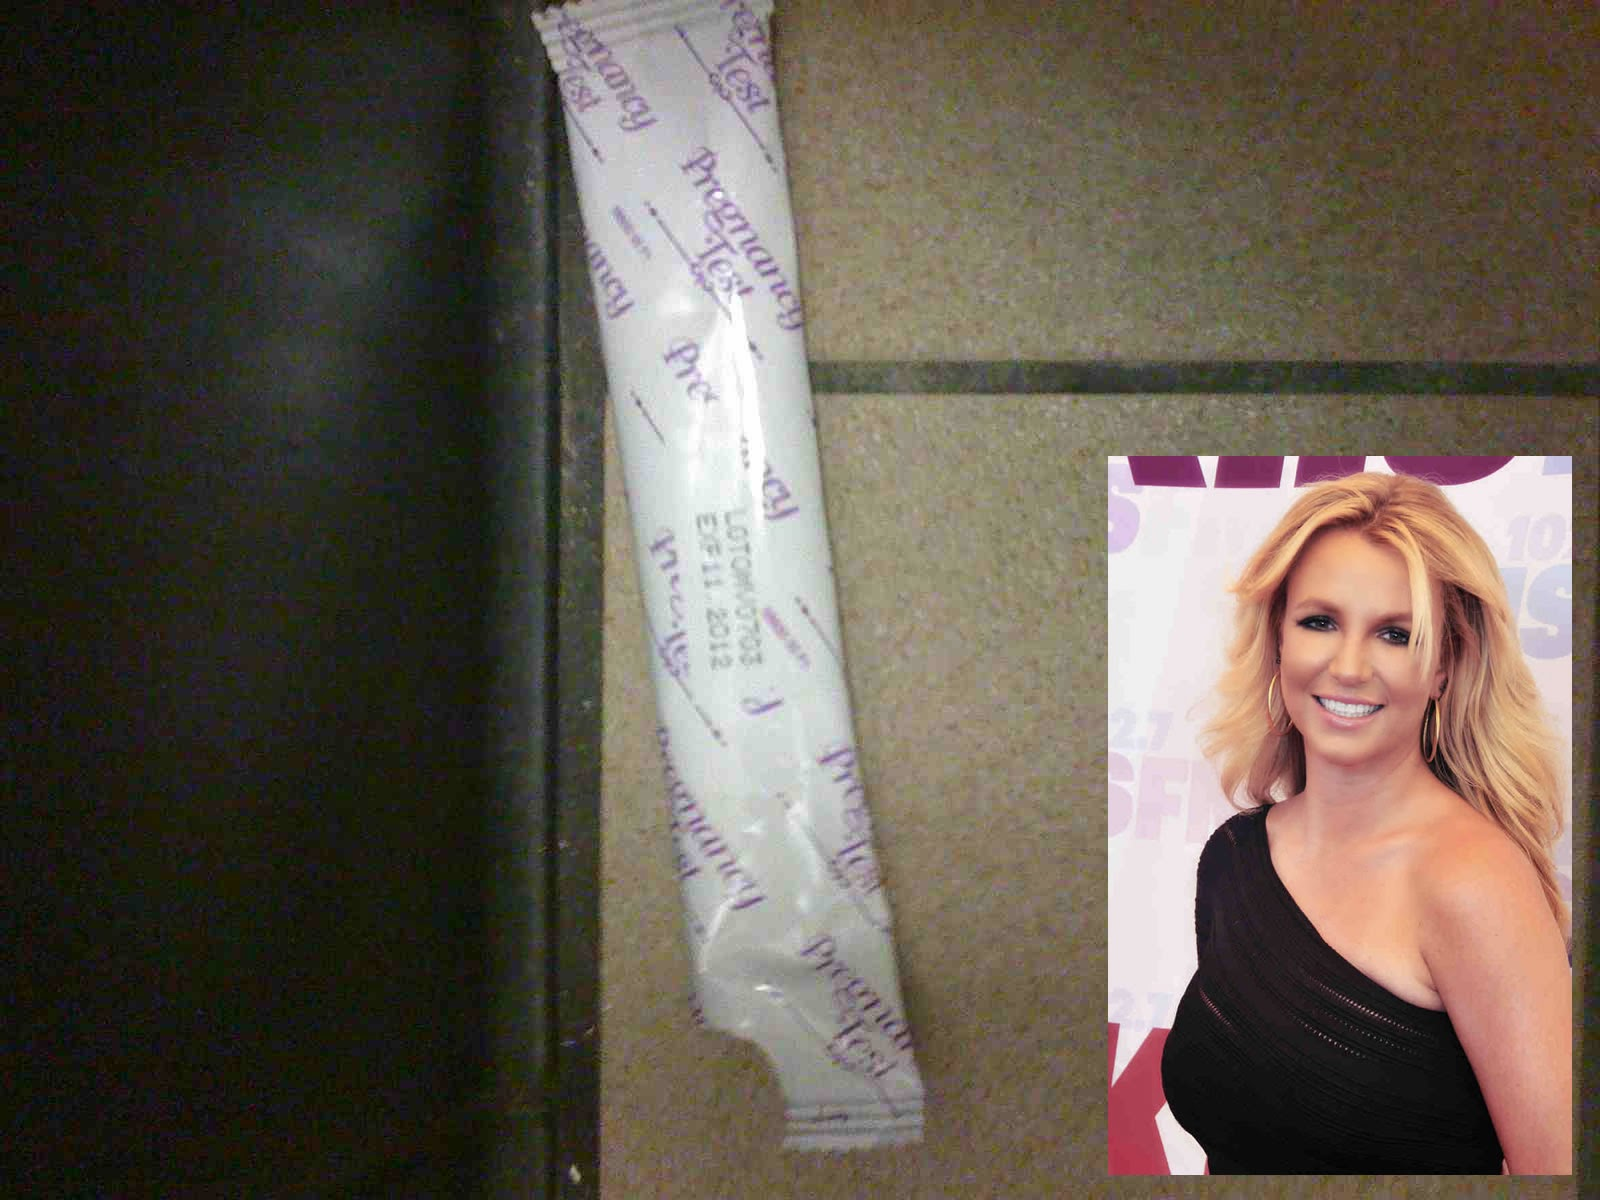 Britney Spears' Pregnancy Test